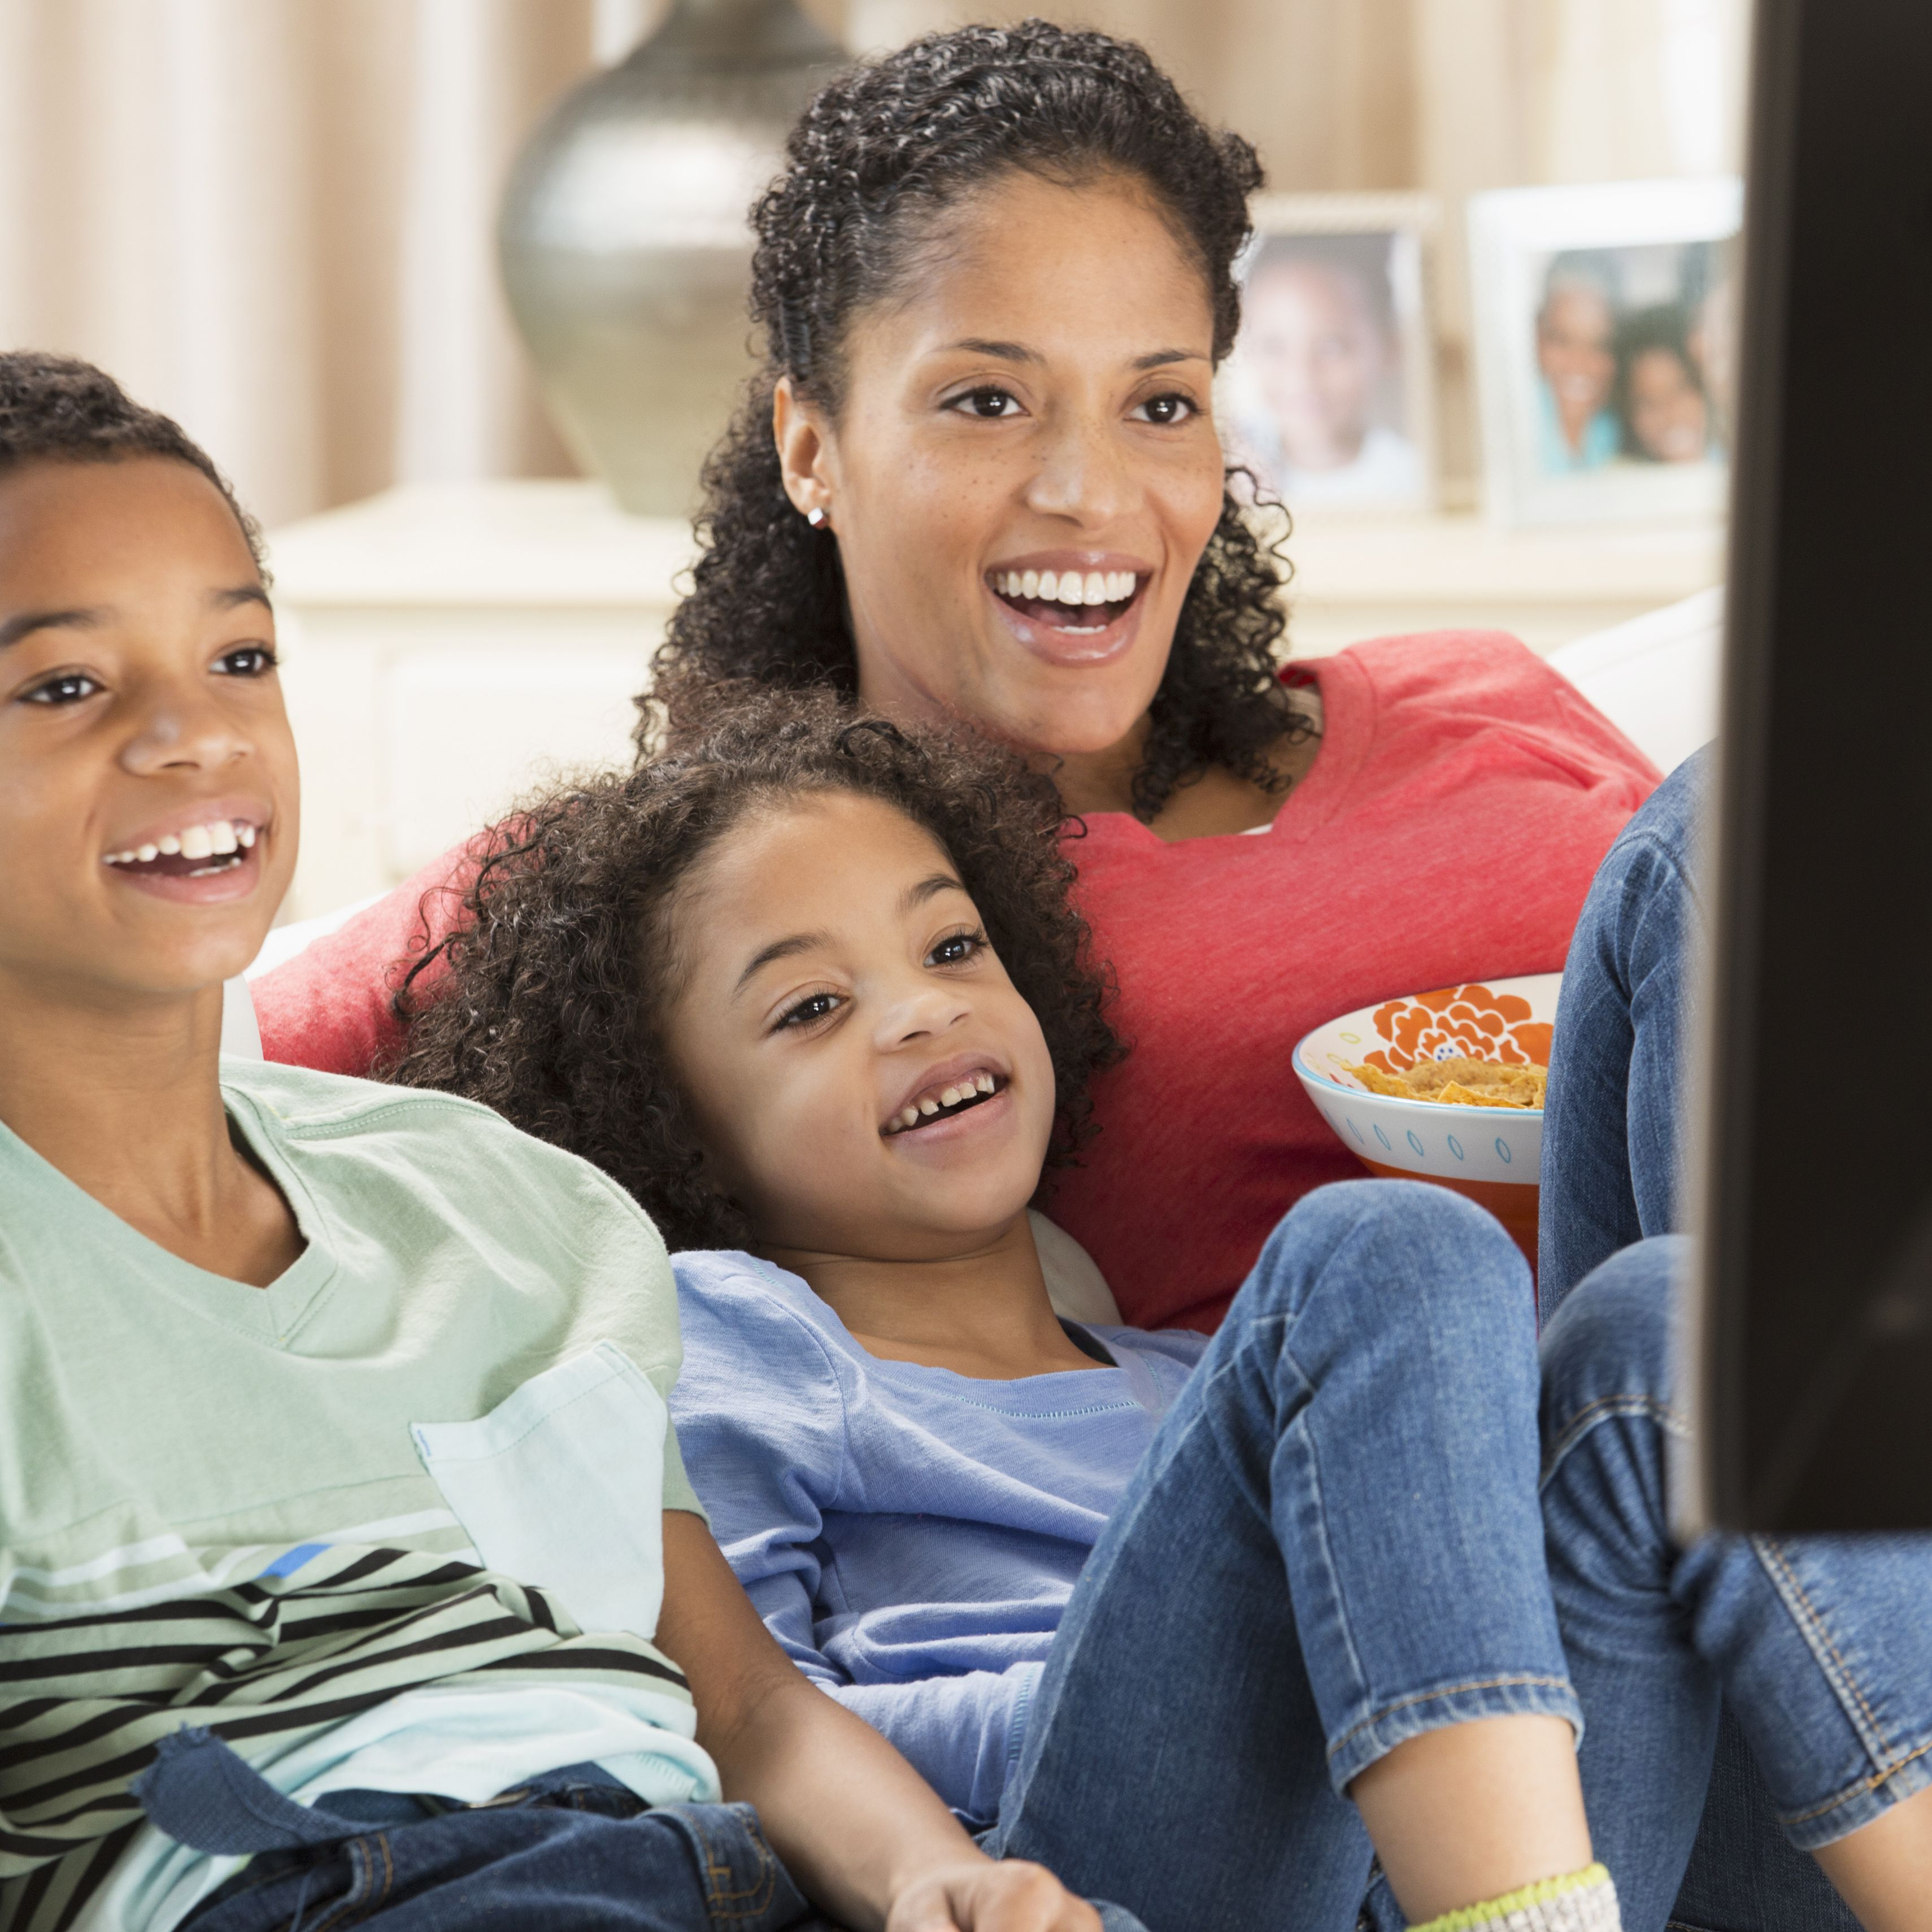 Watching TV Can Be Good for Kids